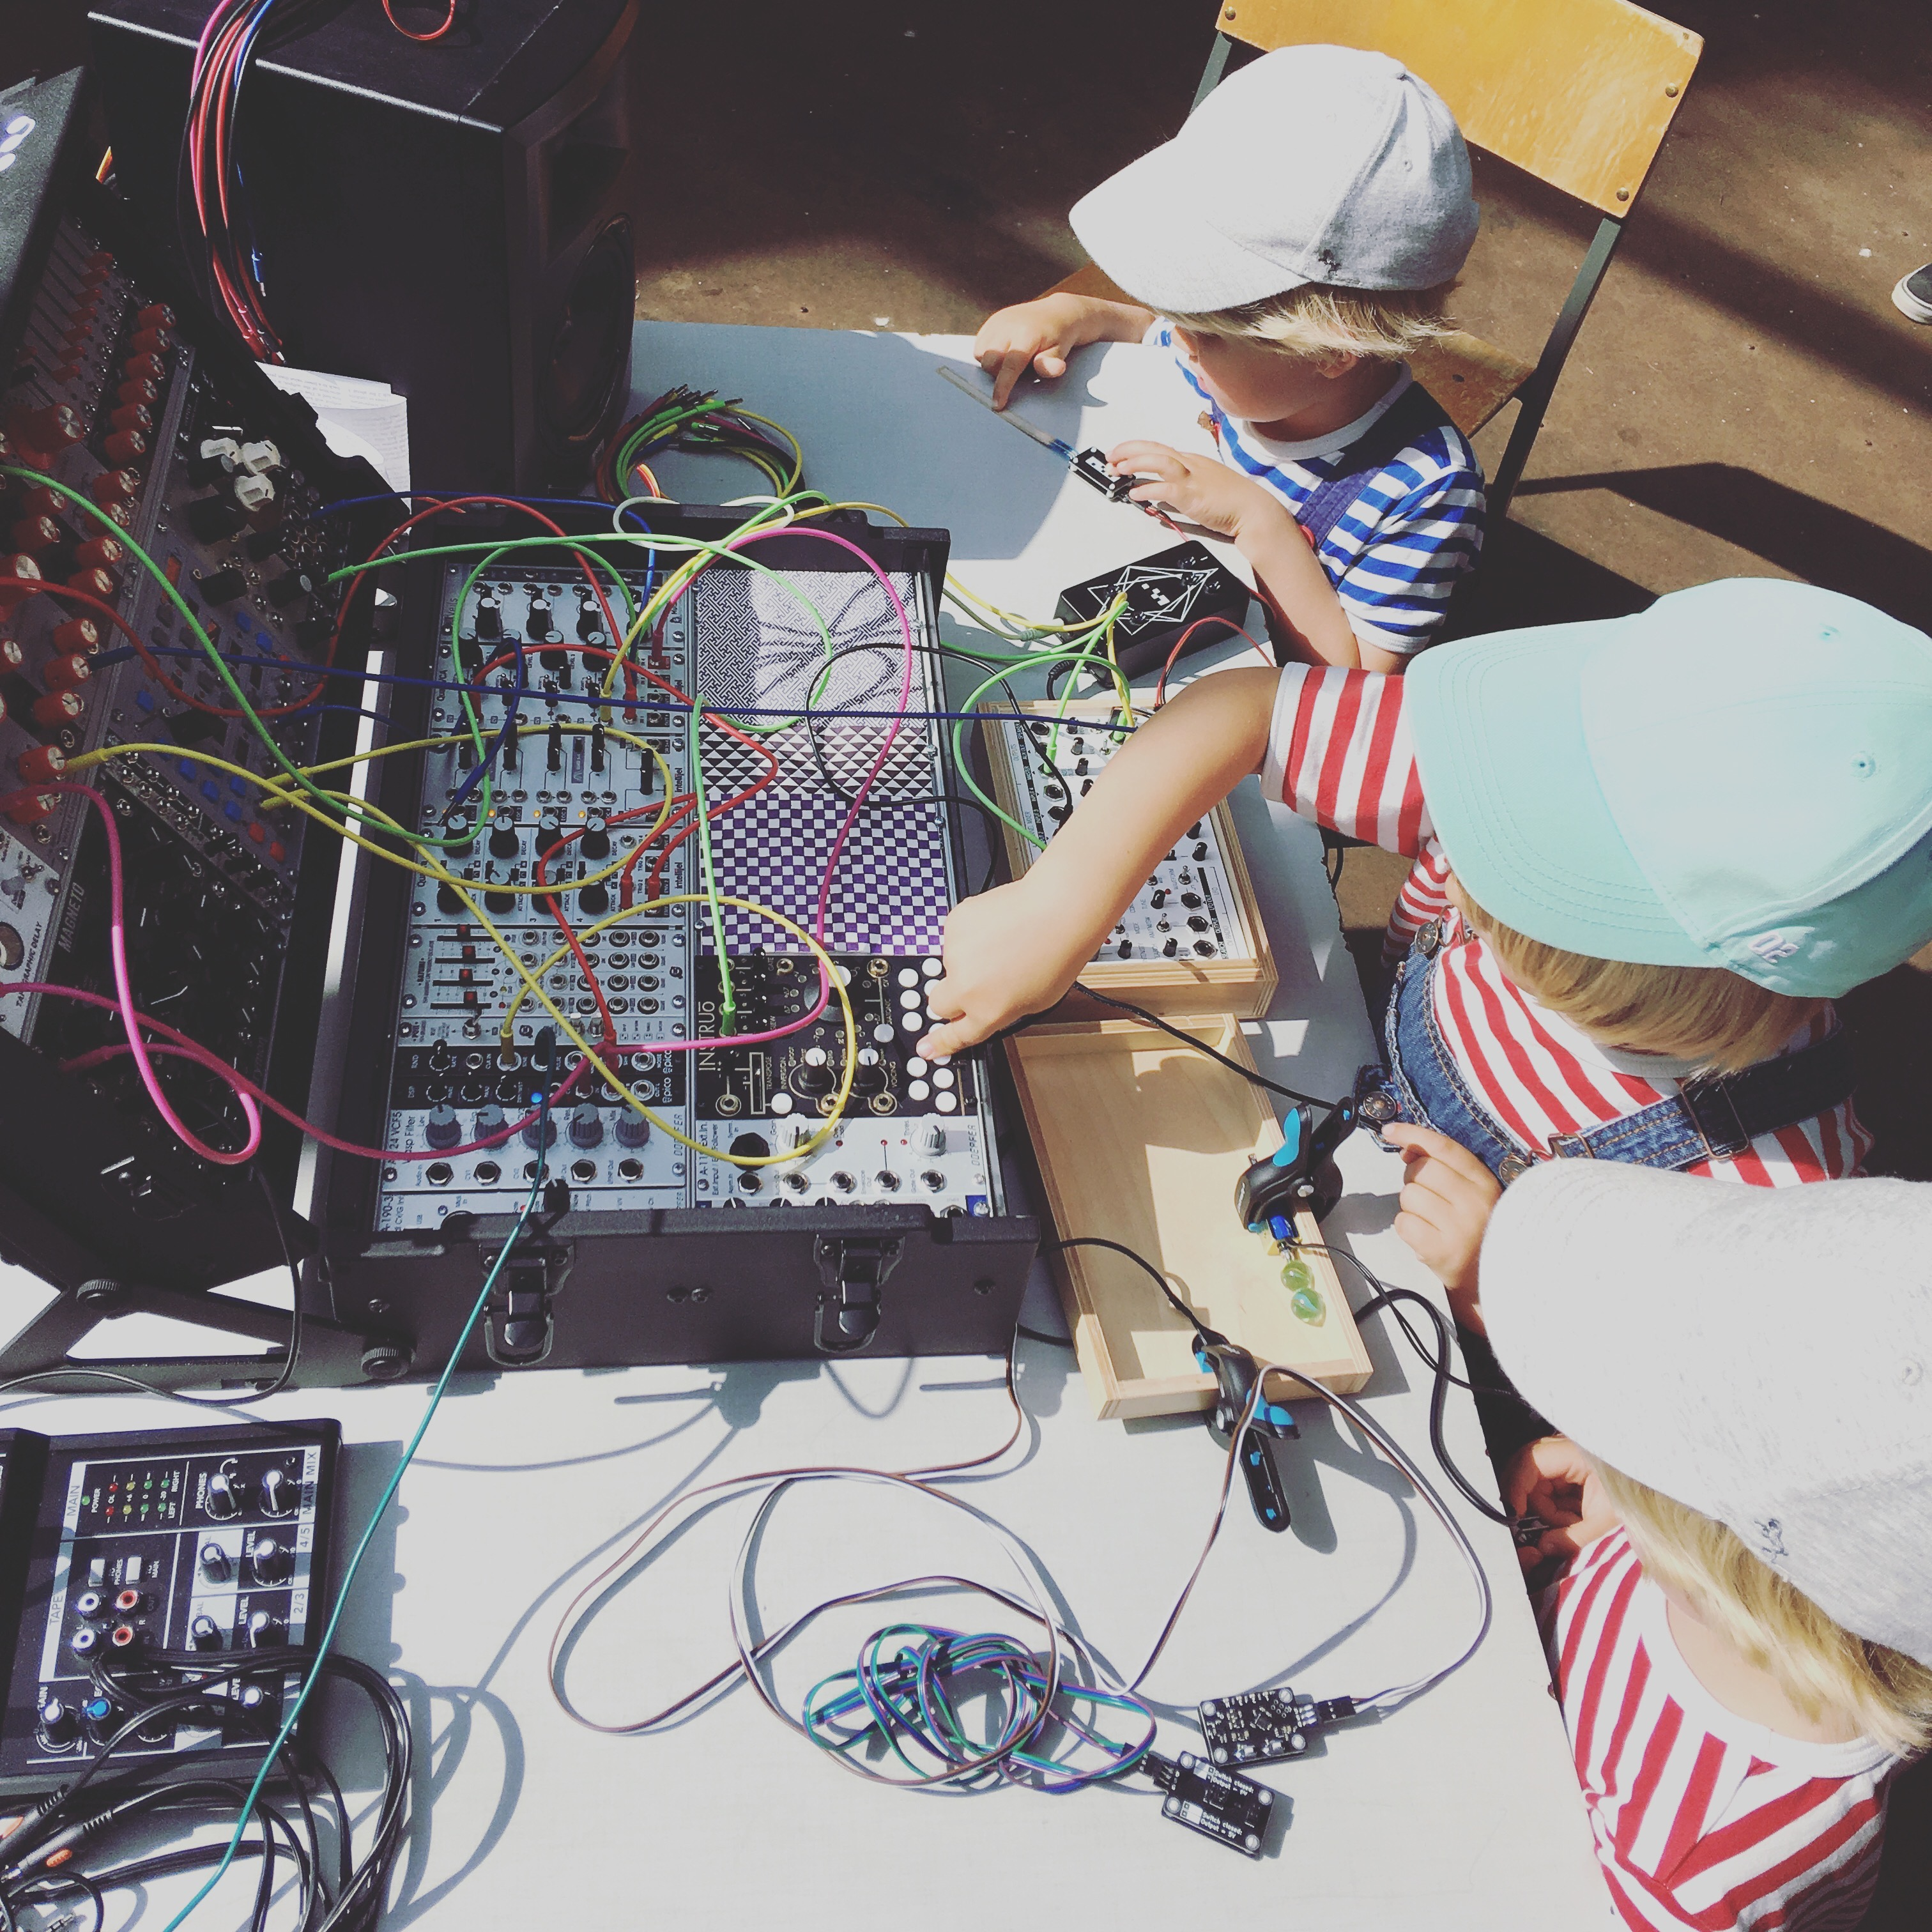 Workshops on electronic music